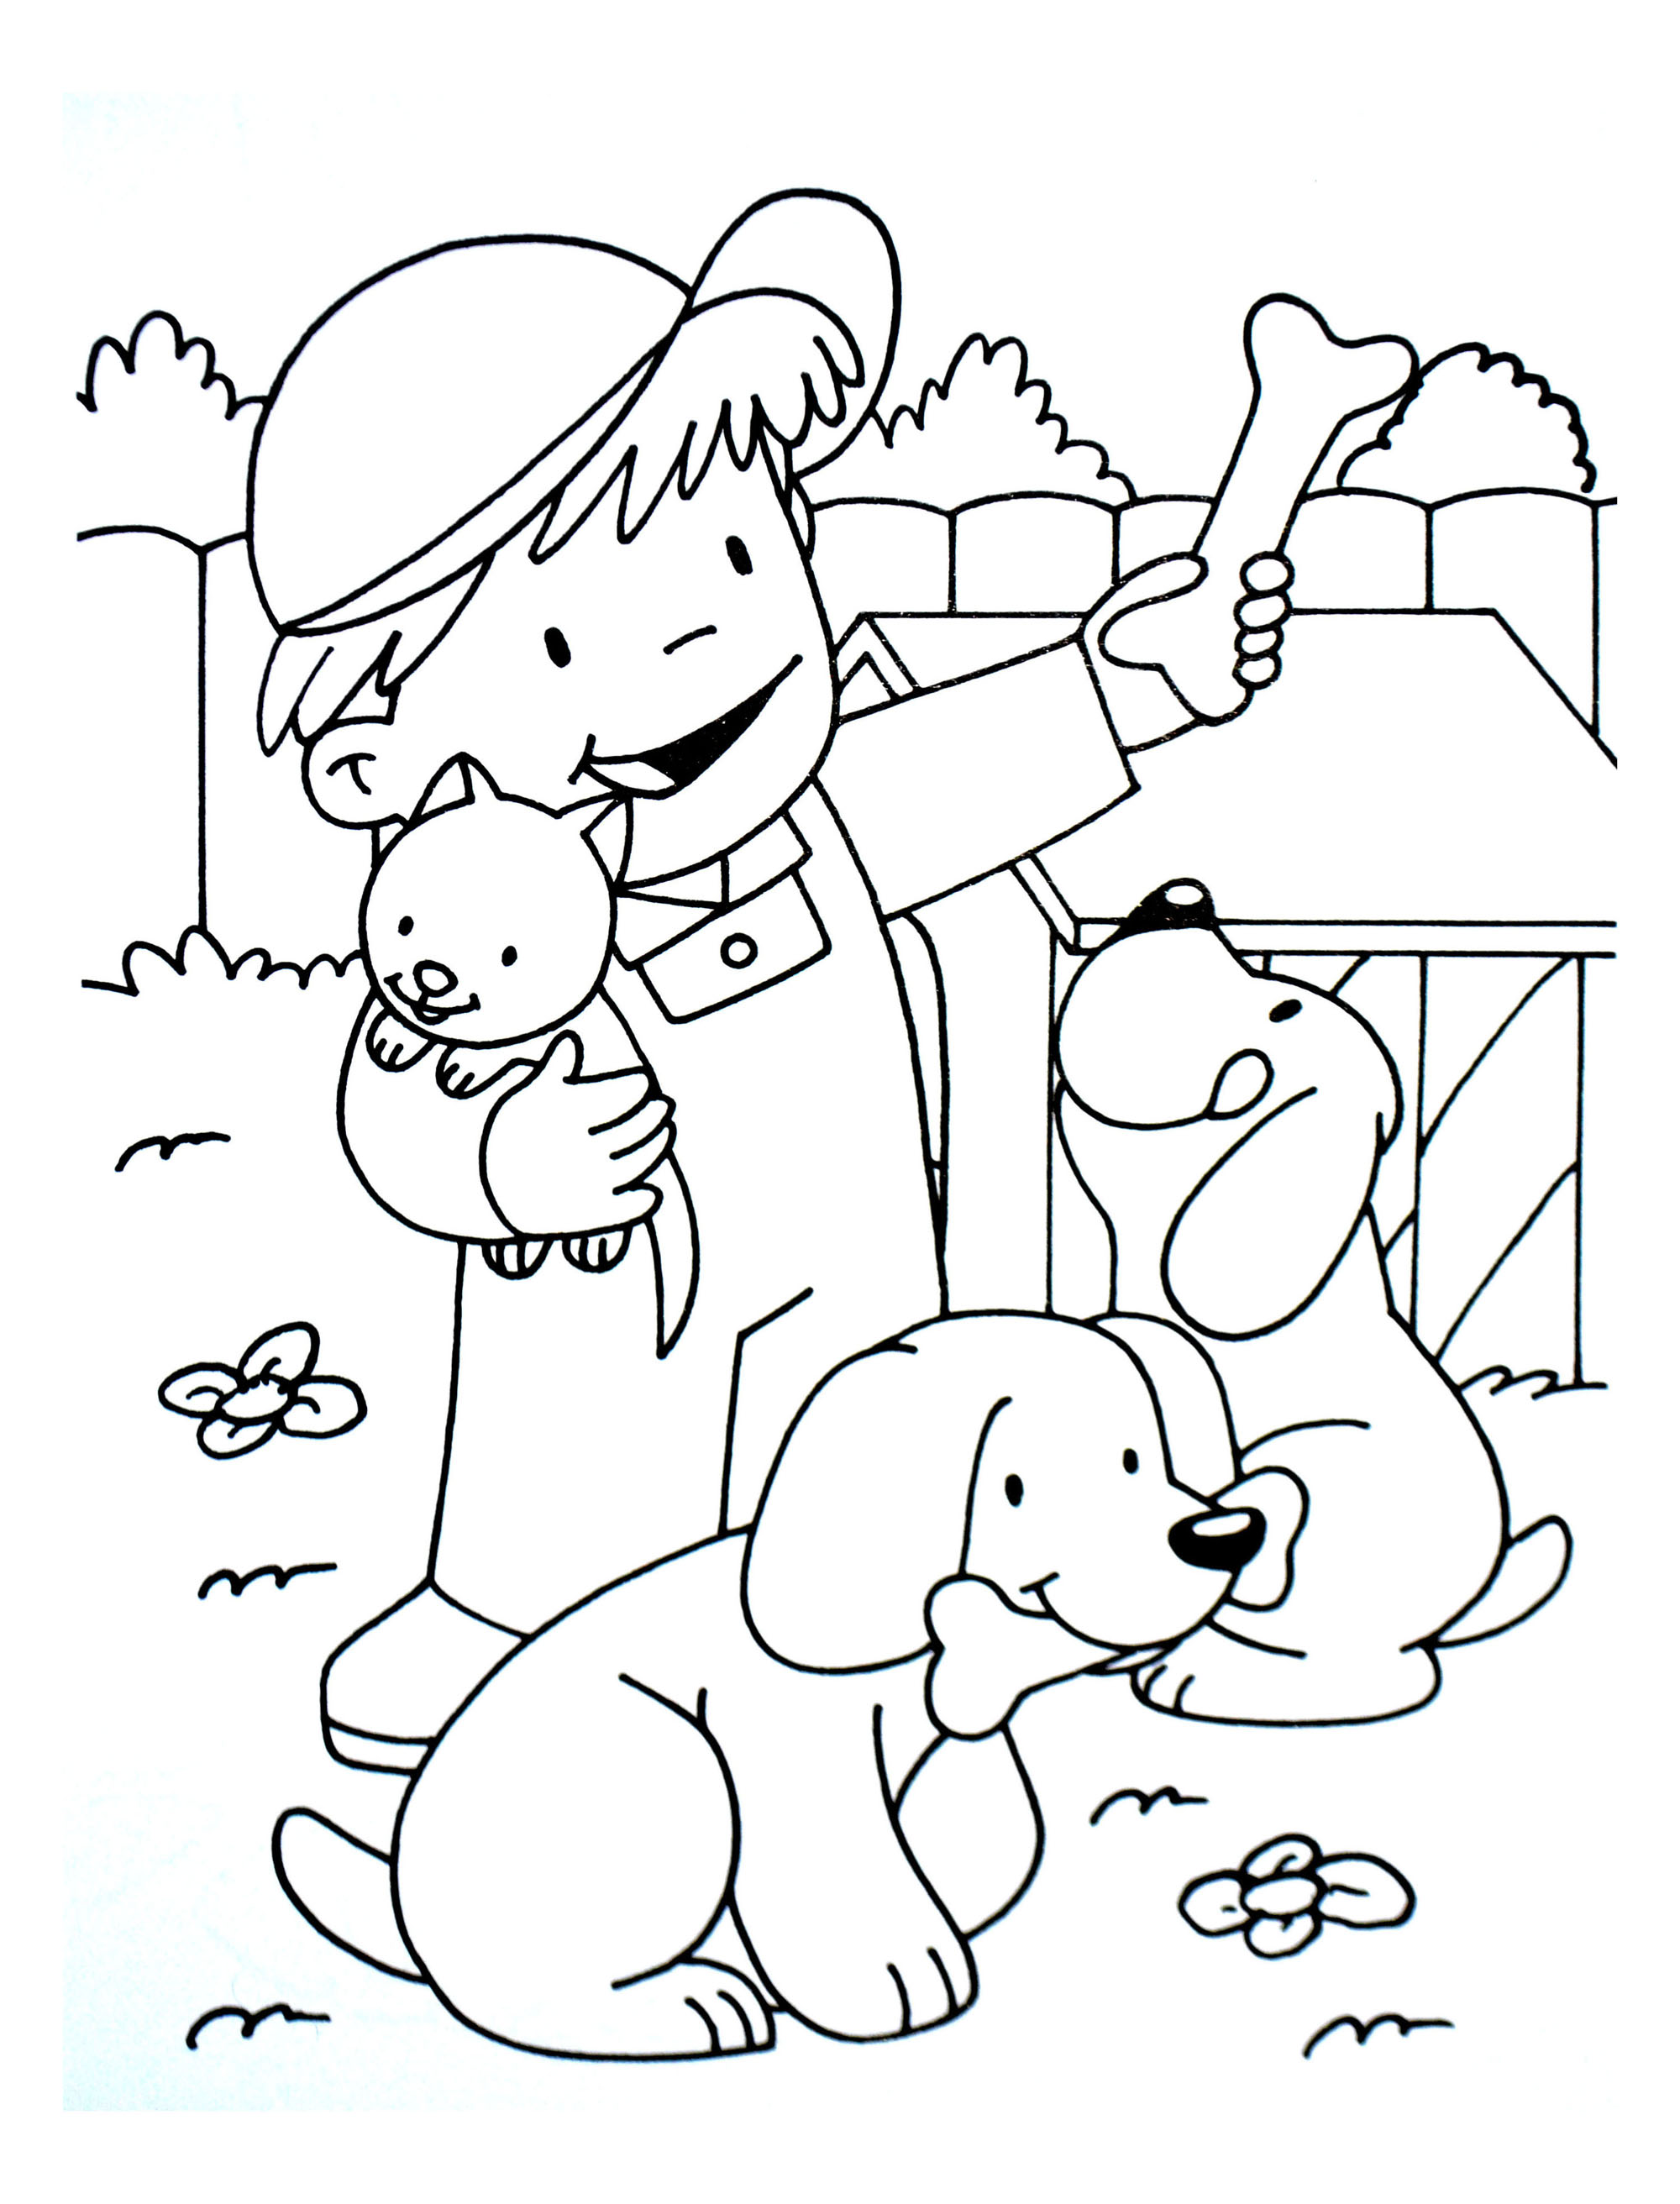 Simple Farm coloring page for kids